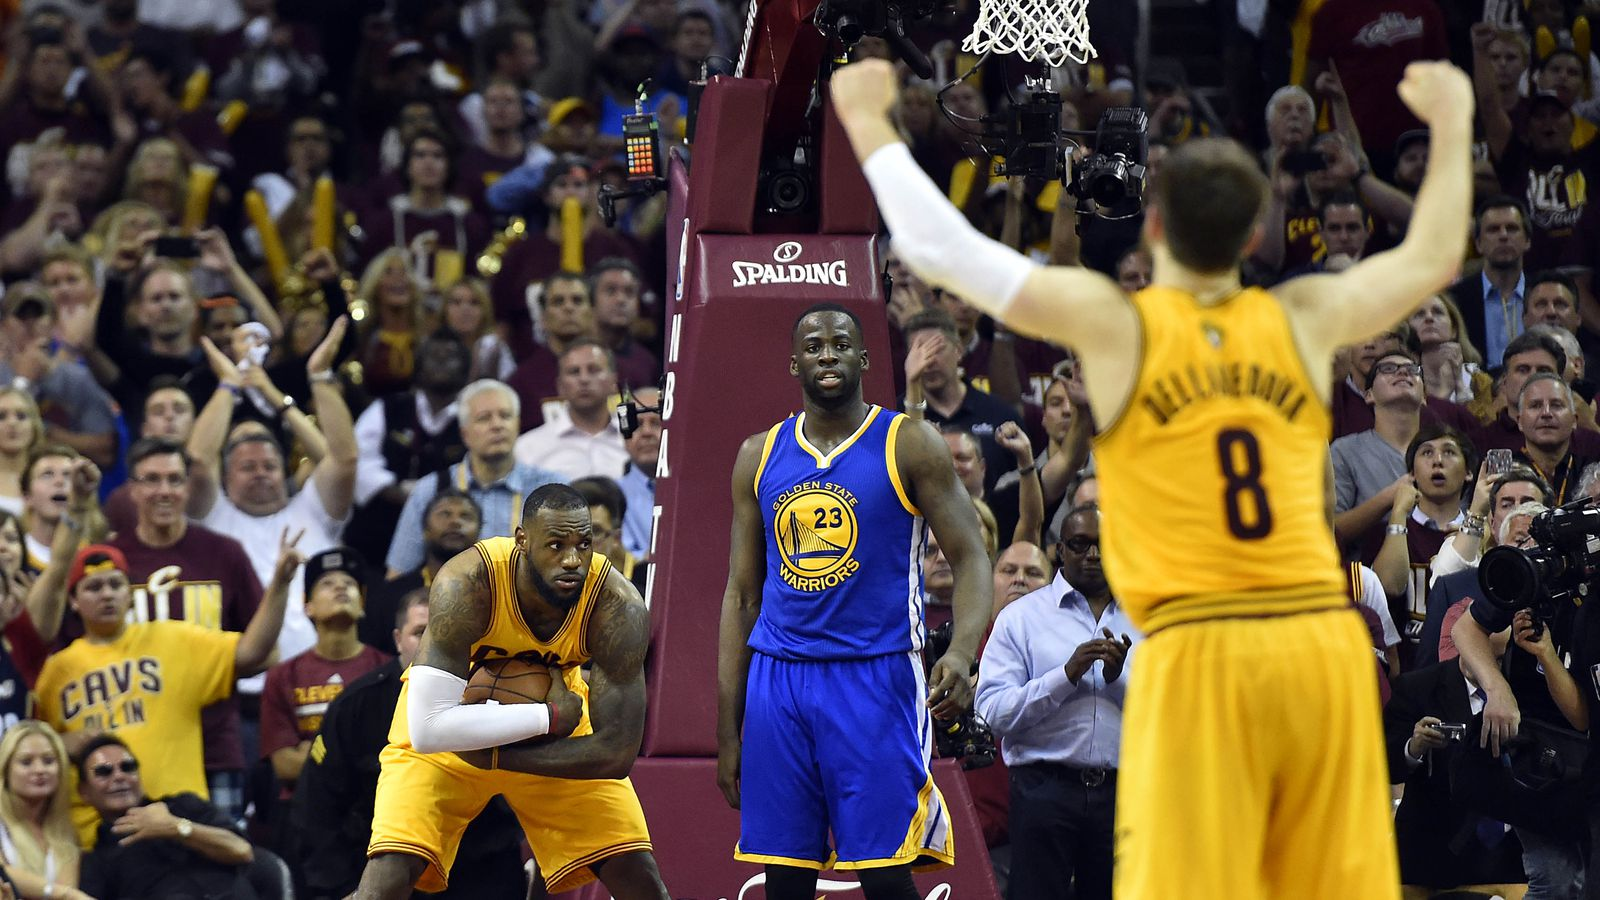 Delly reads, lives 'David and Goliath'